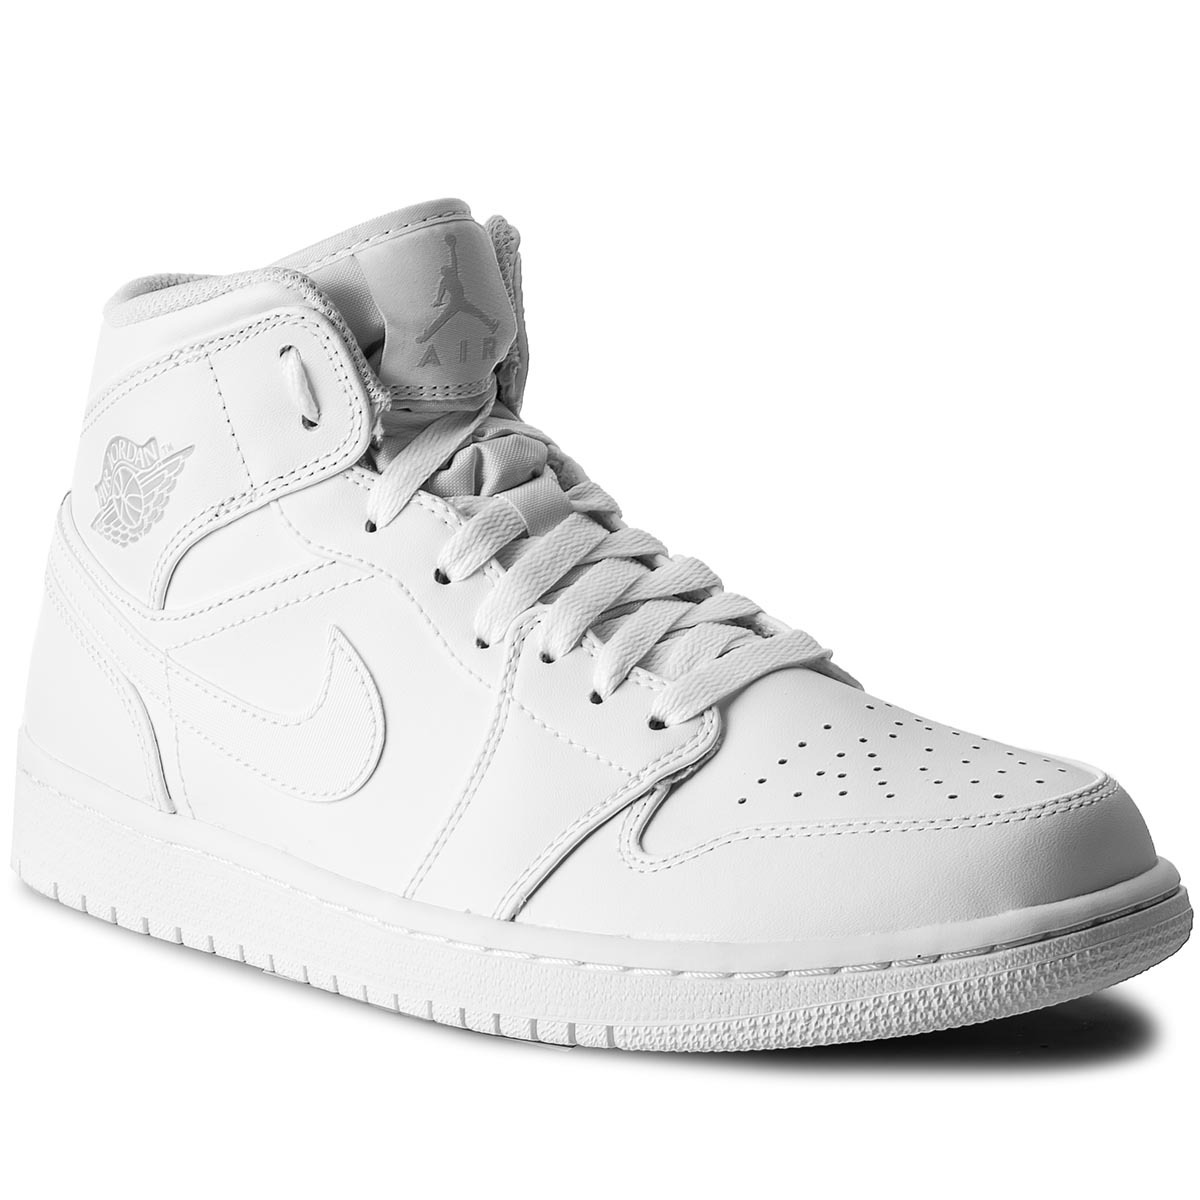 Pantofi NIKE - Air Jordan 1 Mid 554724 104 White/Pure Platinum/White